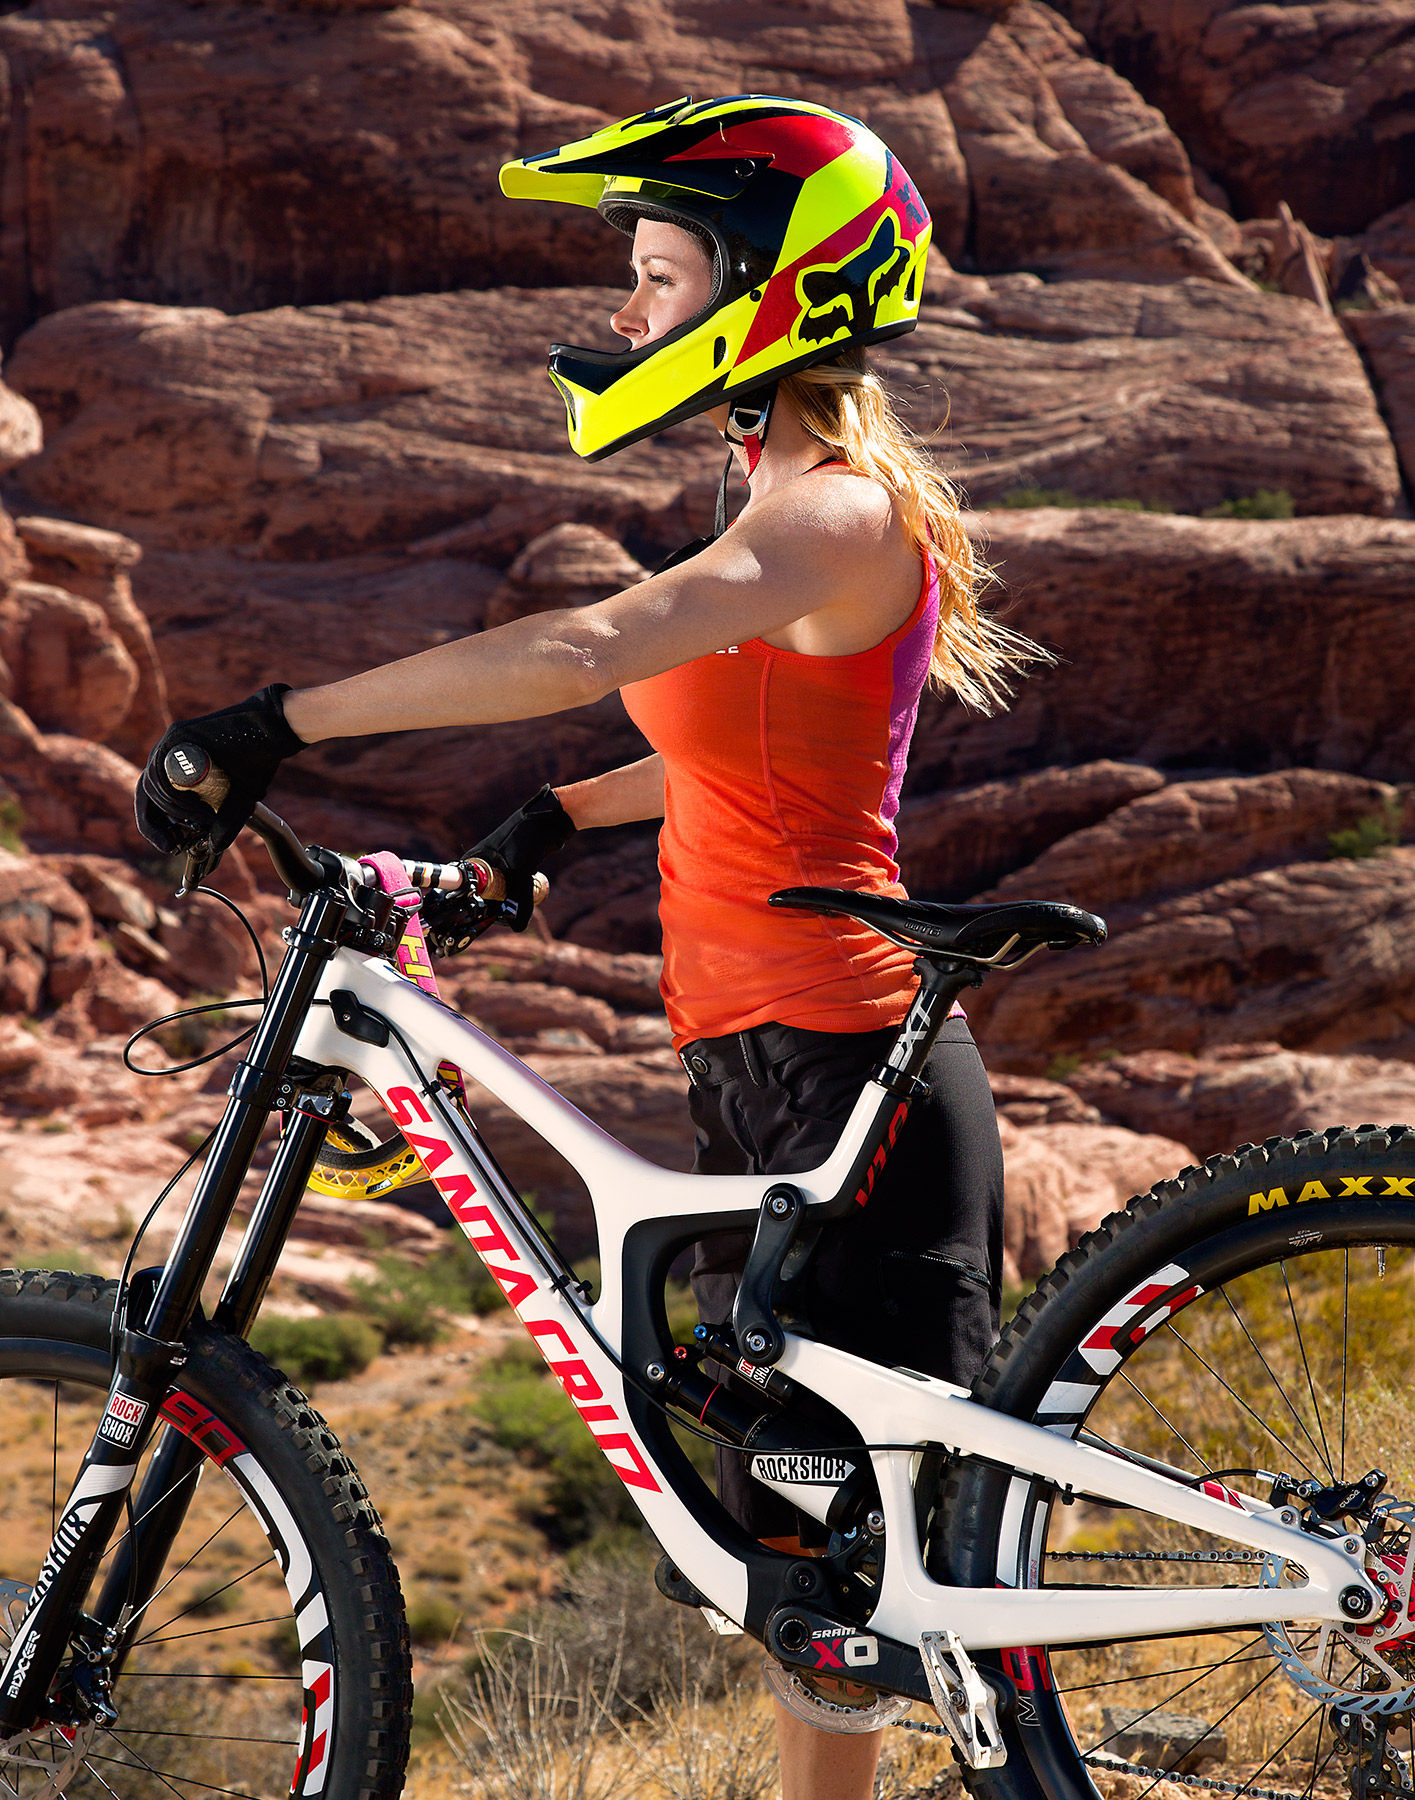 MOUNTAIN-BIKE_RED-ROCKS_NEVADA MATHIS ACTION SPORTS PORTRAIT © JONATHAN R. BECKERMAN PHOTOGRAPHY 10.jpg